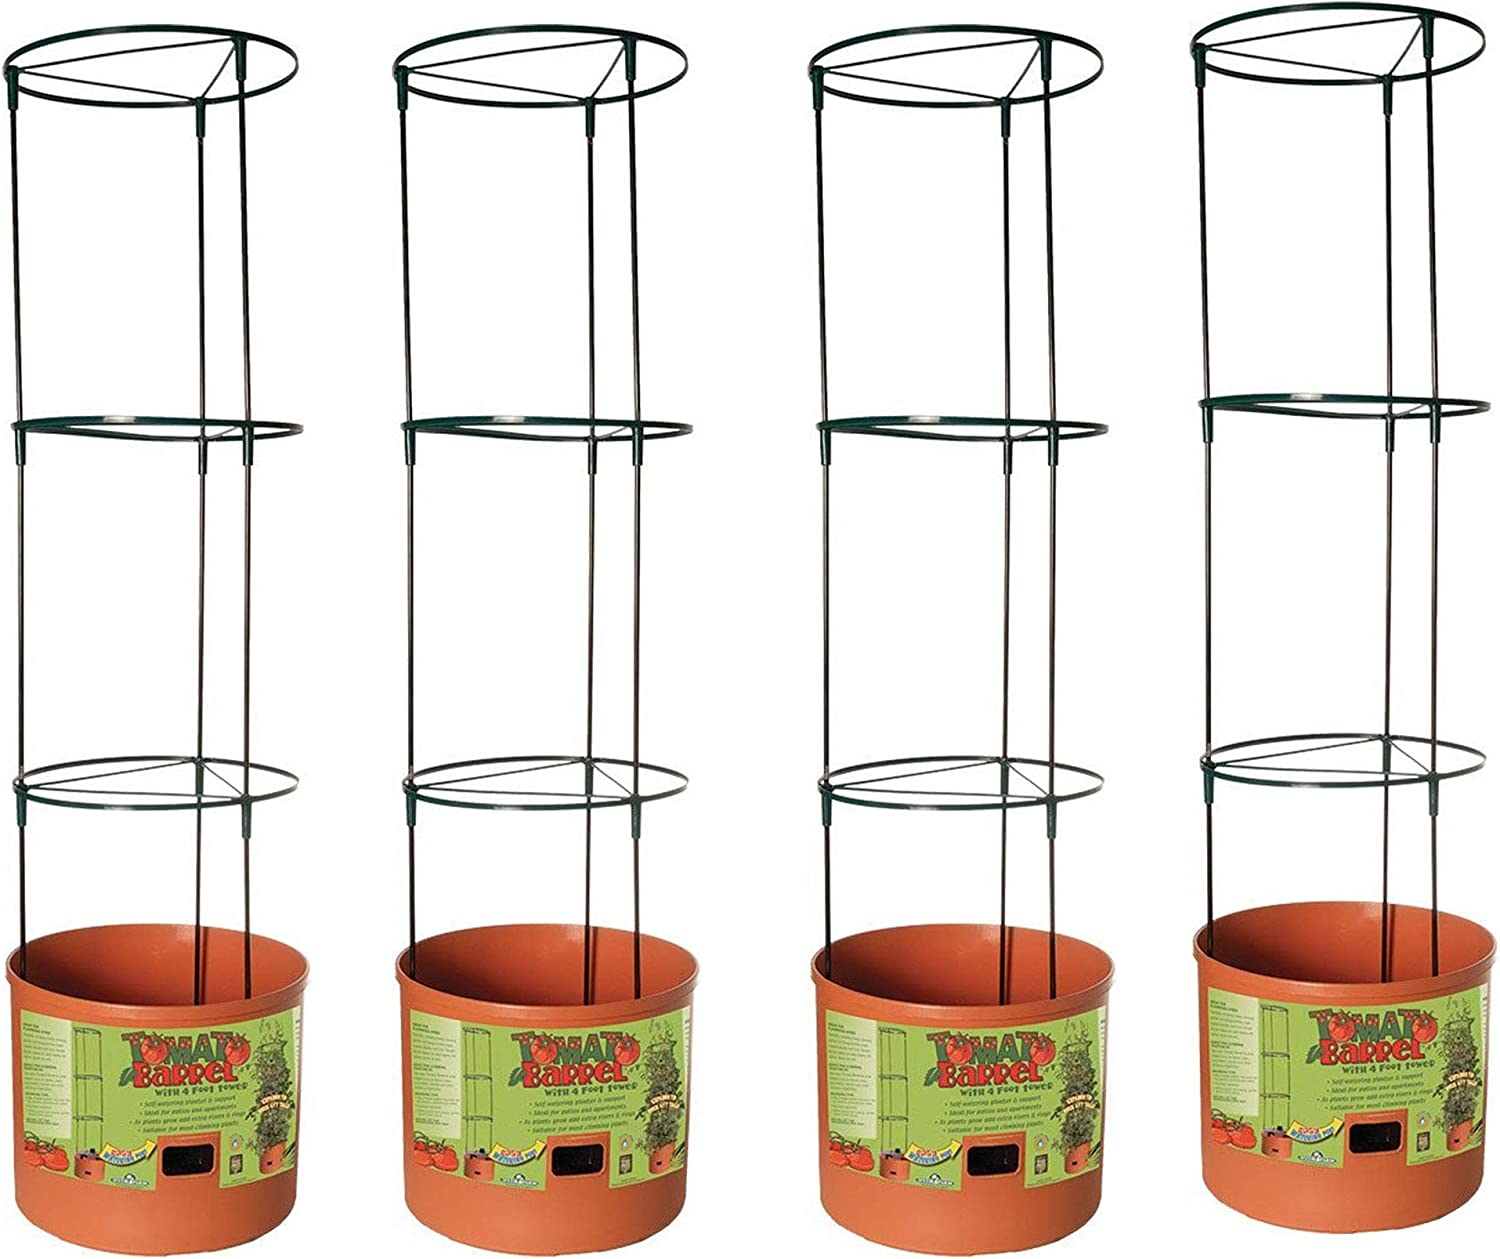 Hydrofarm Tomato Barrel Garden Planting System with 4 Ft Trellis Tower 4 Pack